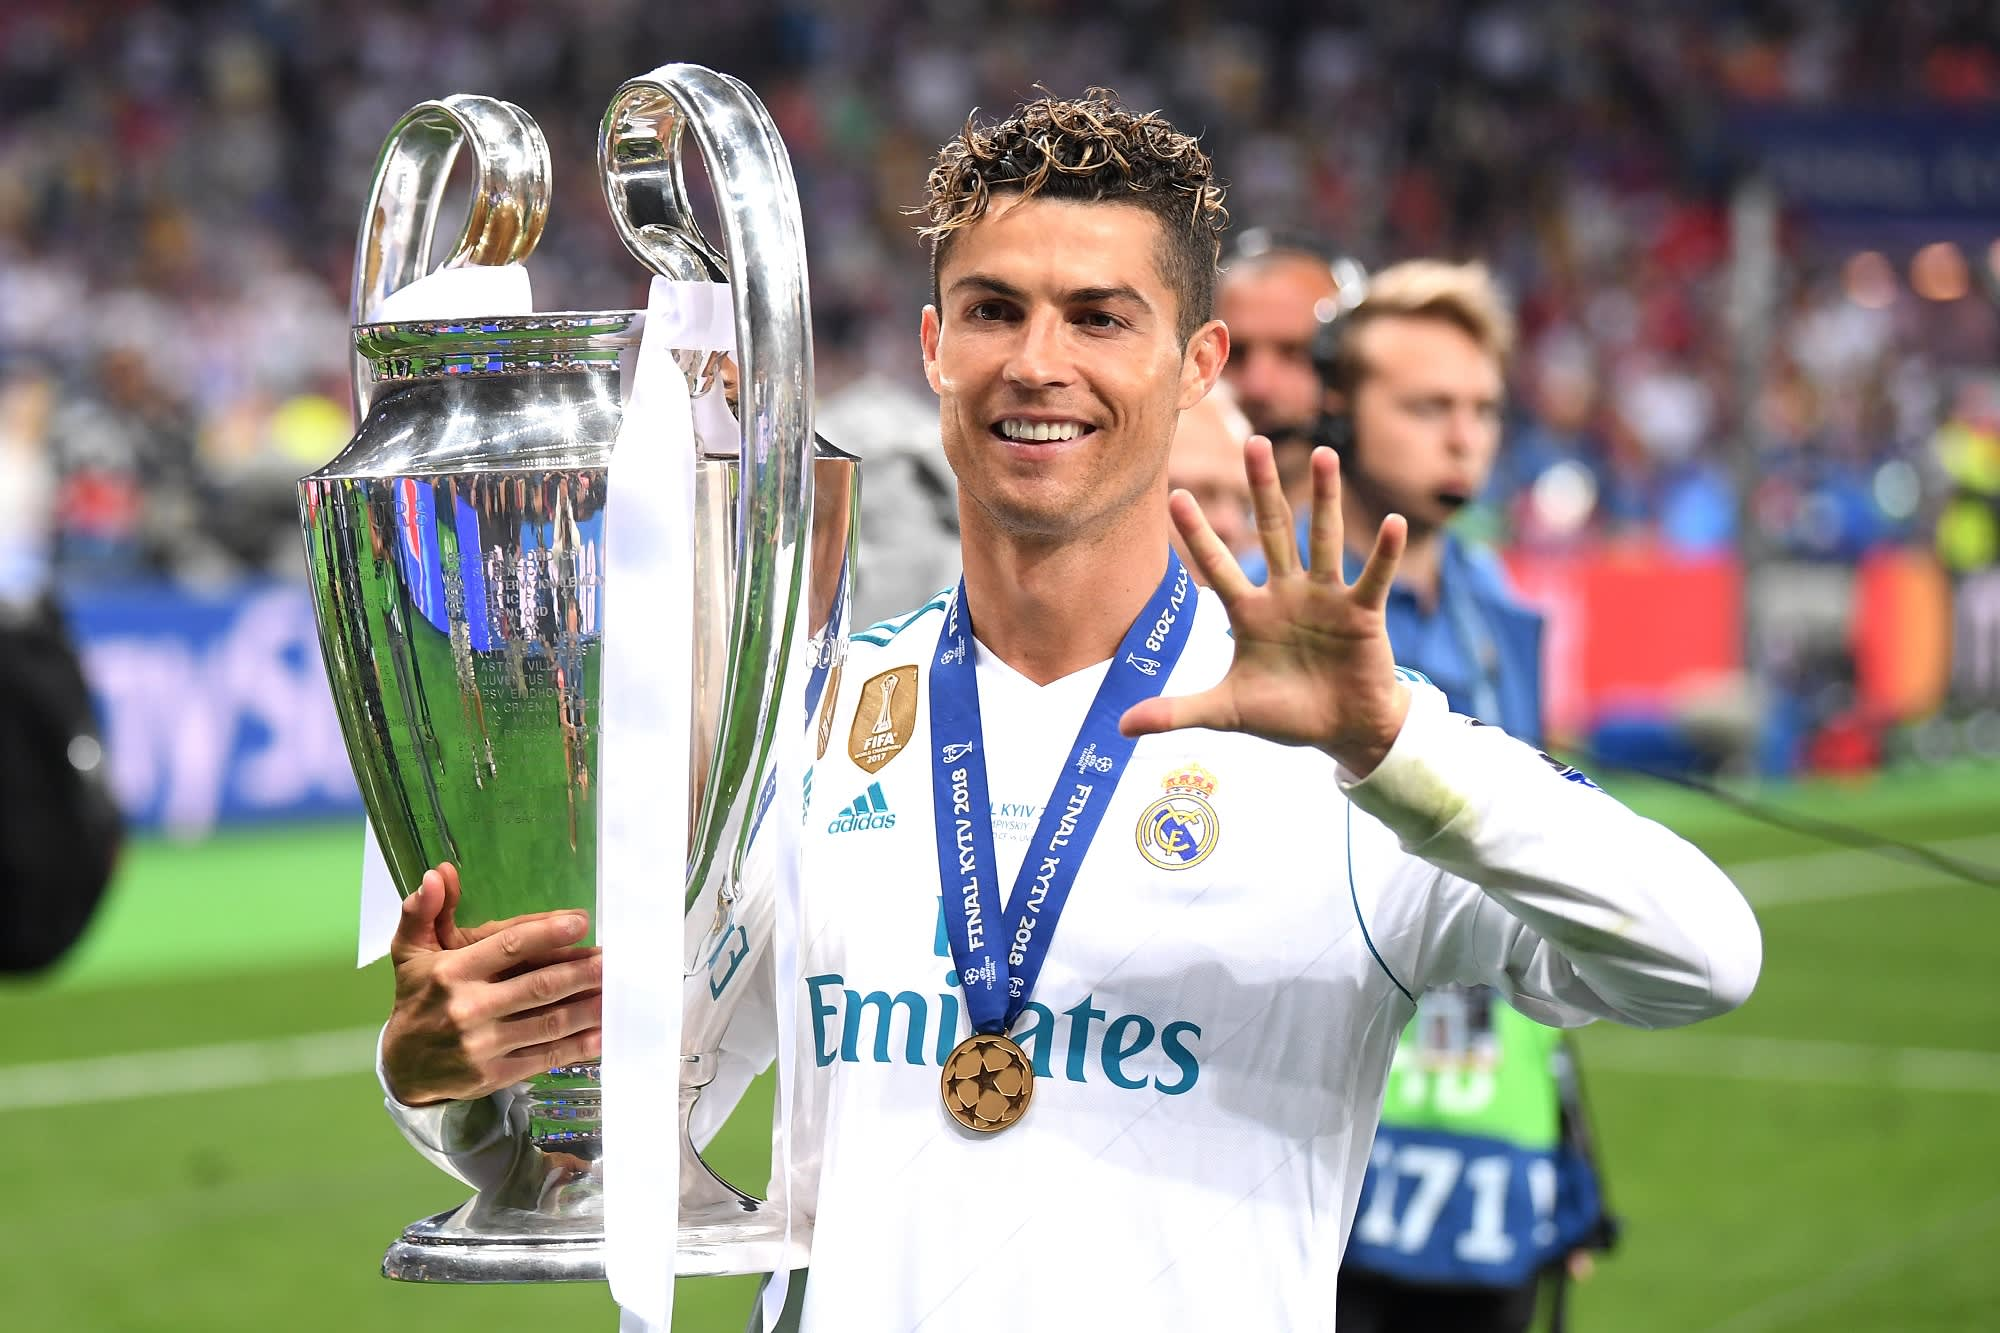 Cristiano Ronaldo of Real Madrid lifts The UEFA Champions League trophy following his sides victory in during the UEFA Champions League Final between Real Madrid and Liverpool at NSC Olimpiyskiy Stadium on May 26, 2018 in Kiev, Ukraine.